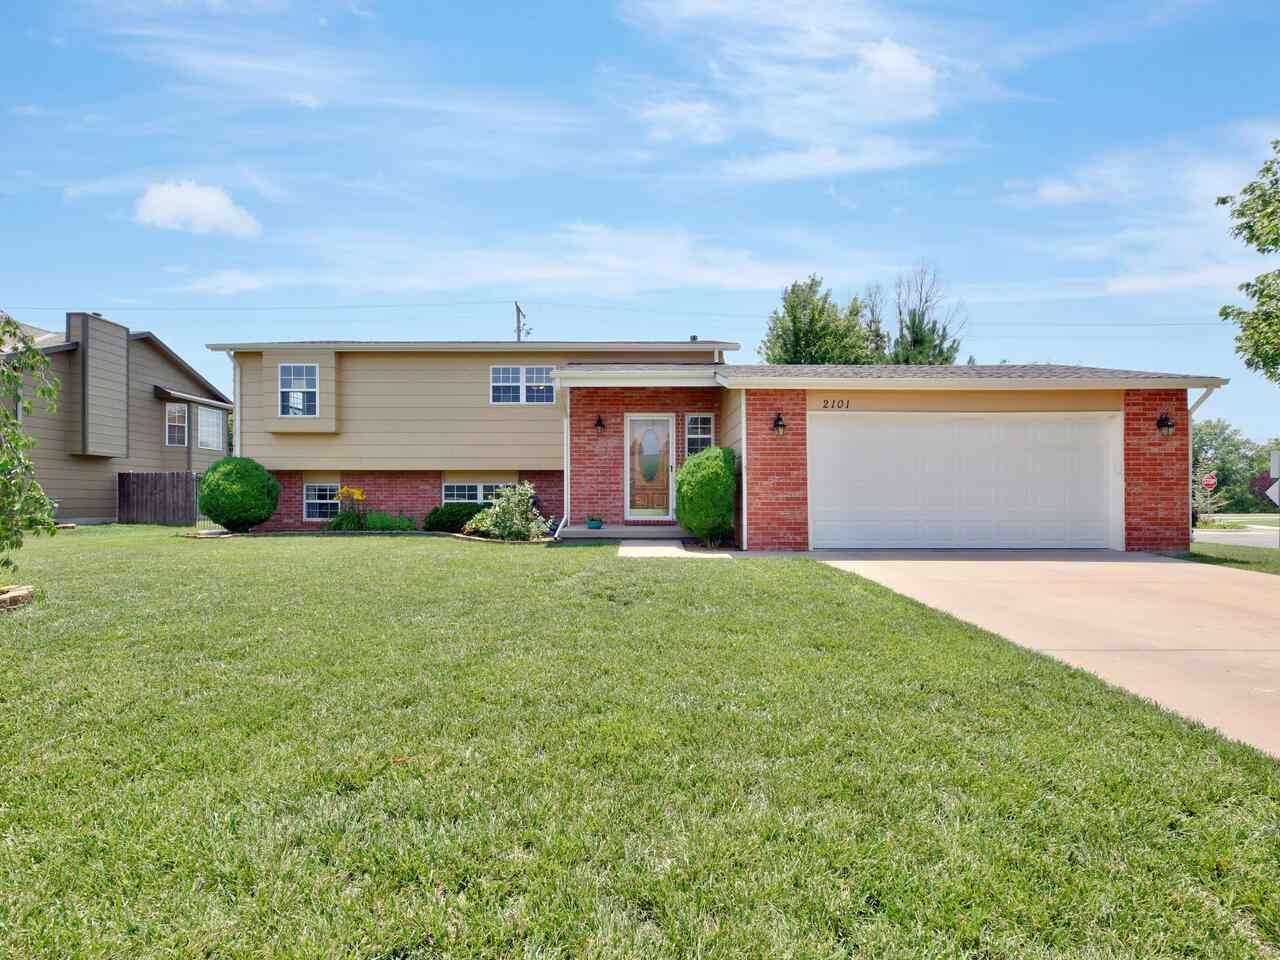 Don't miss this 4 bedroom home conveniently located just east of shopping and restaurants!  This one